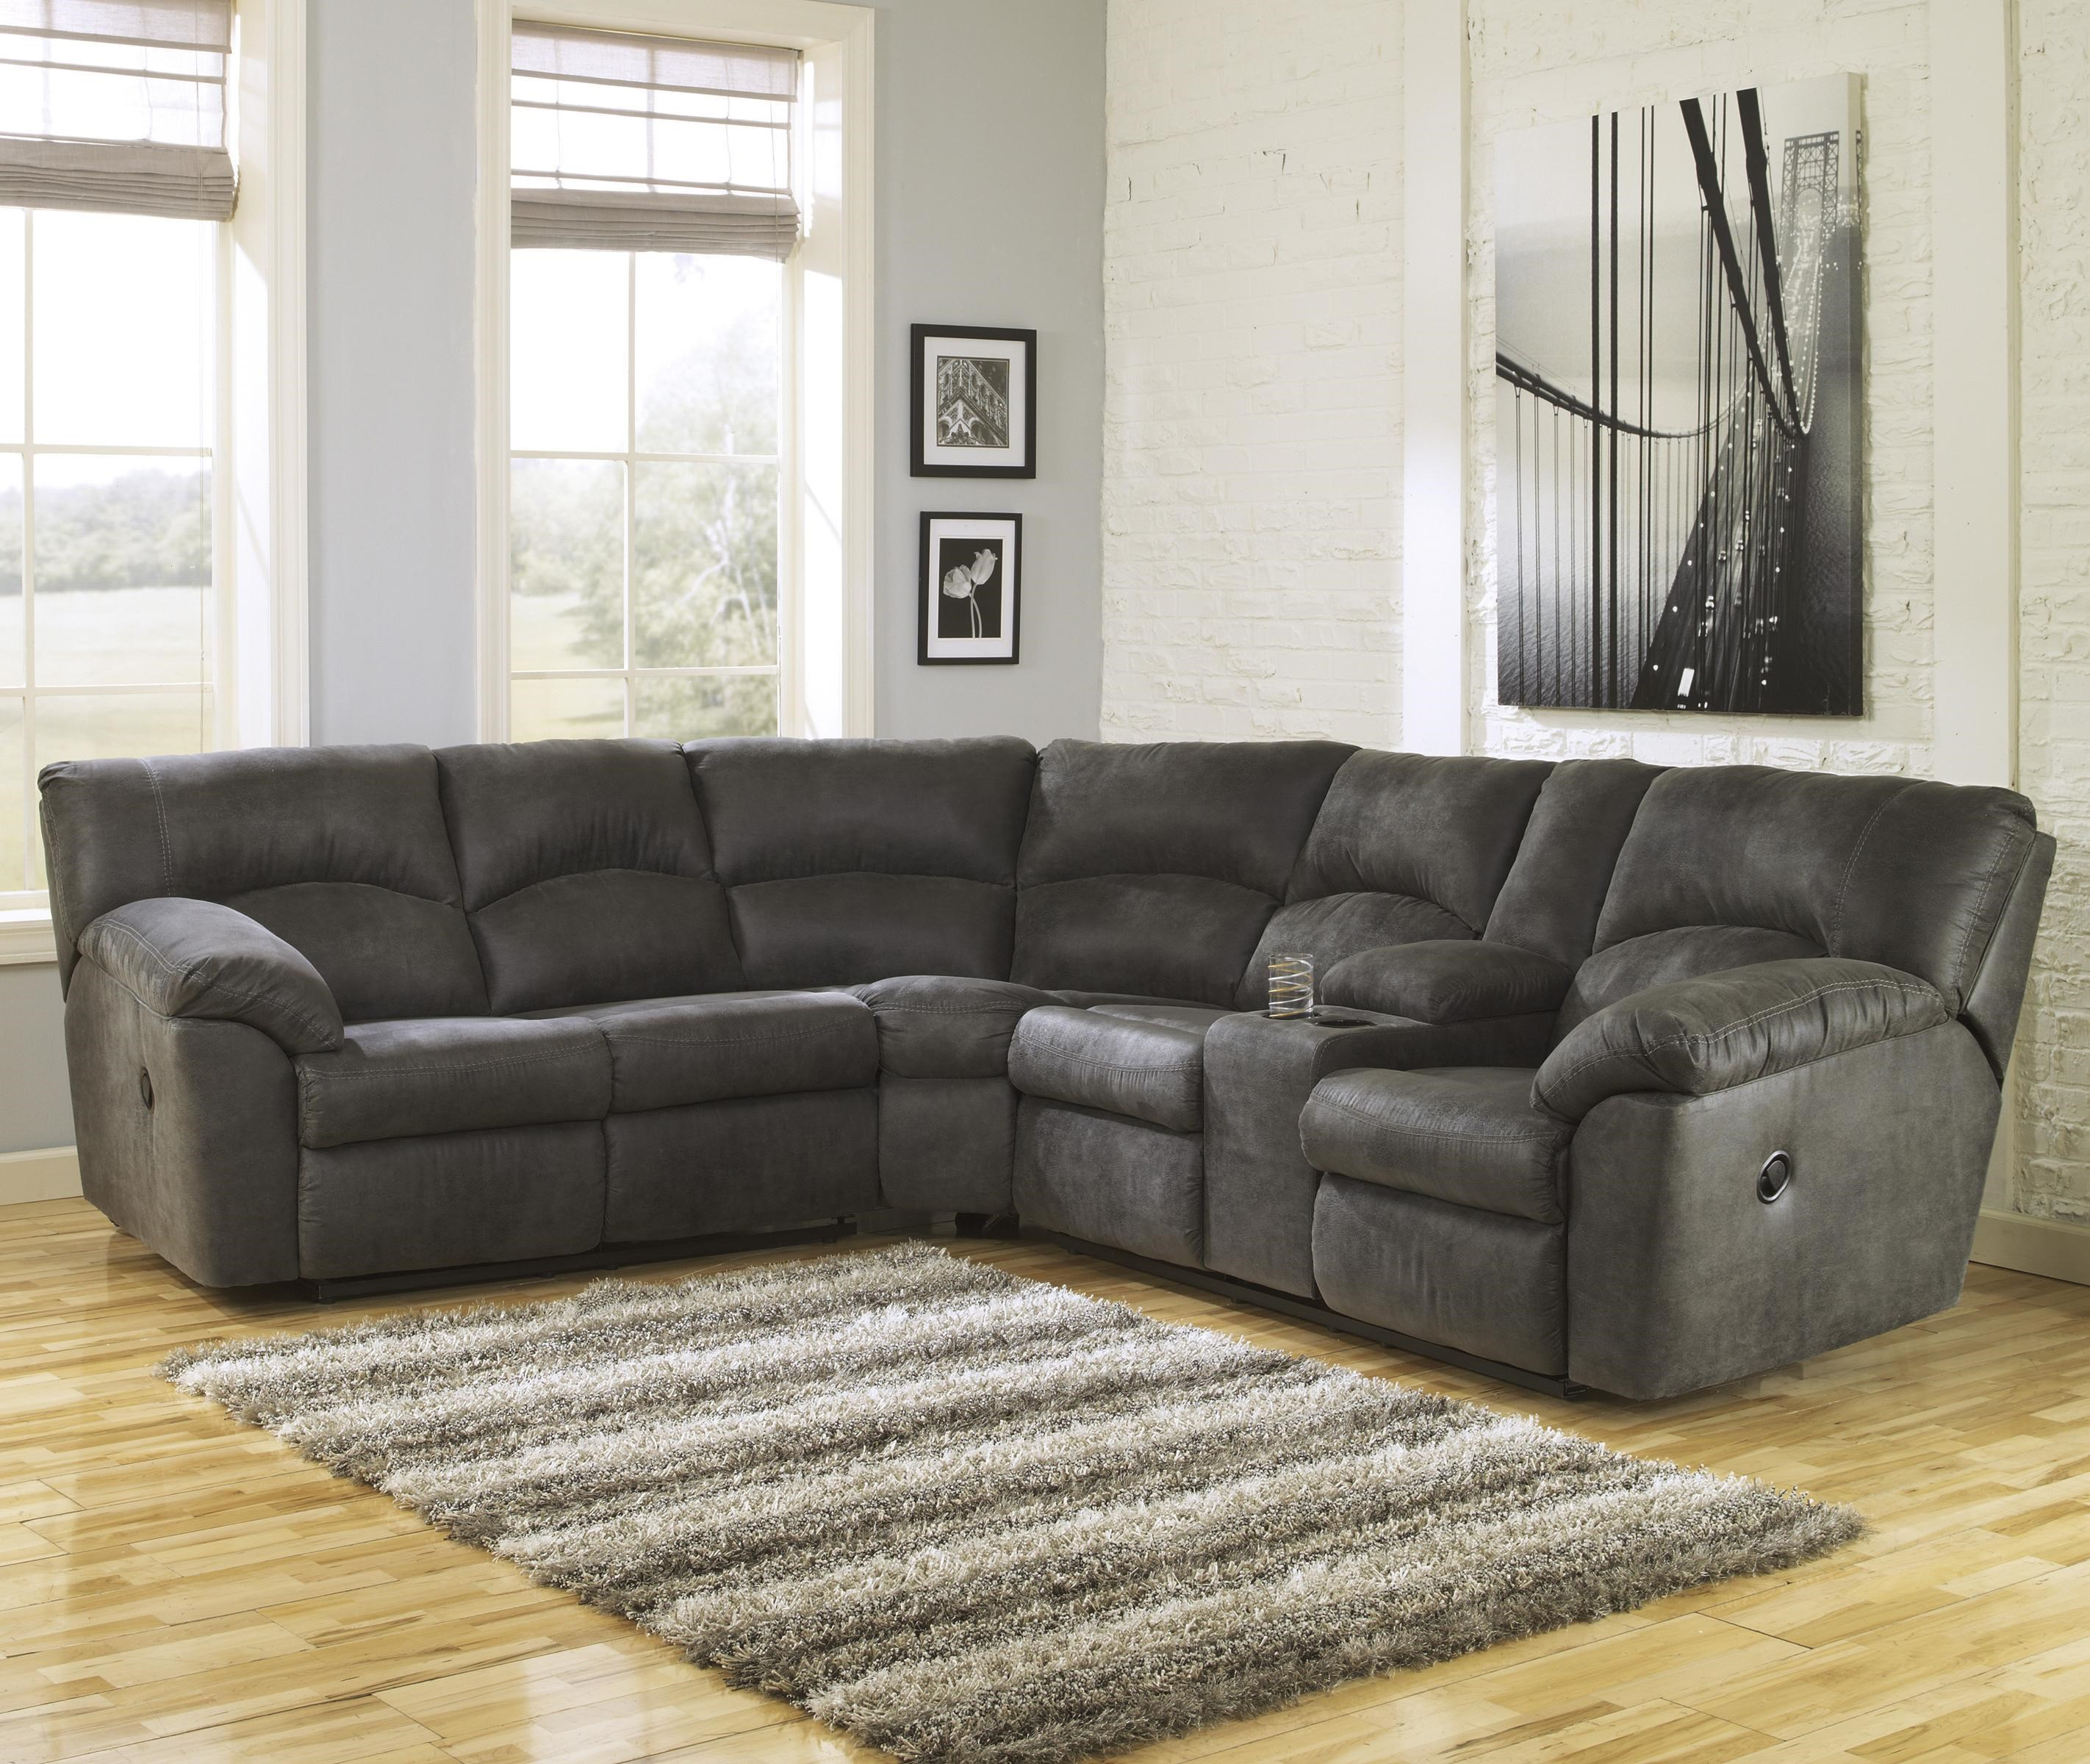 Sectional Sofa Sale Houston: 2-Piece Reclining Corner Sectional With Center Console By